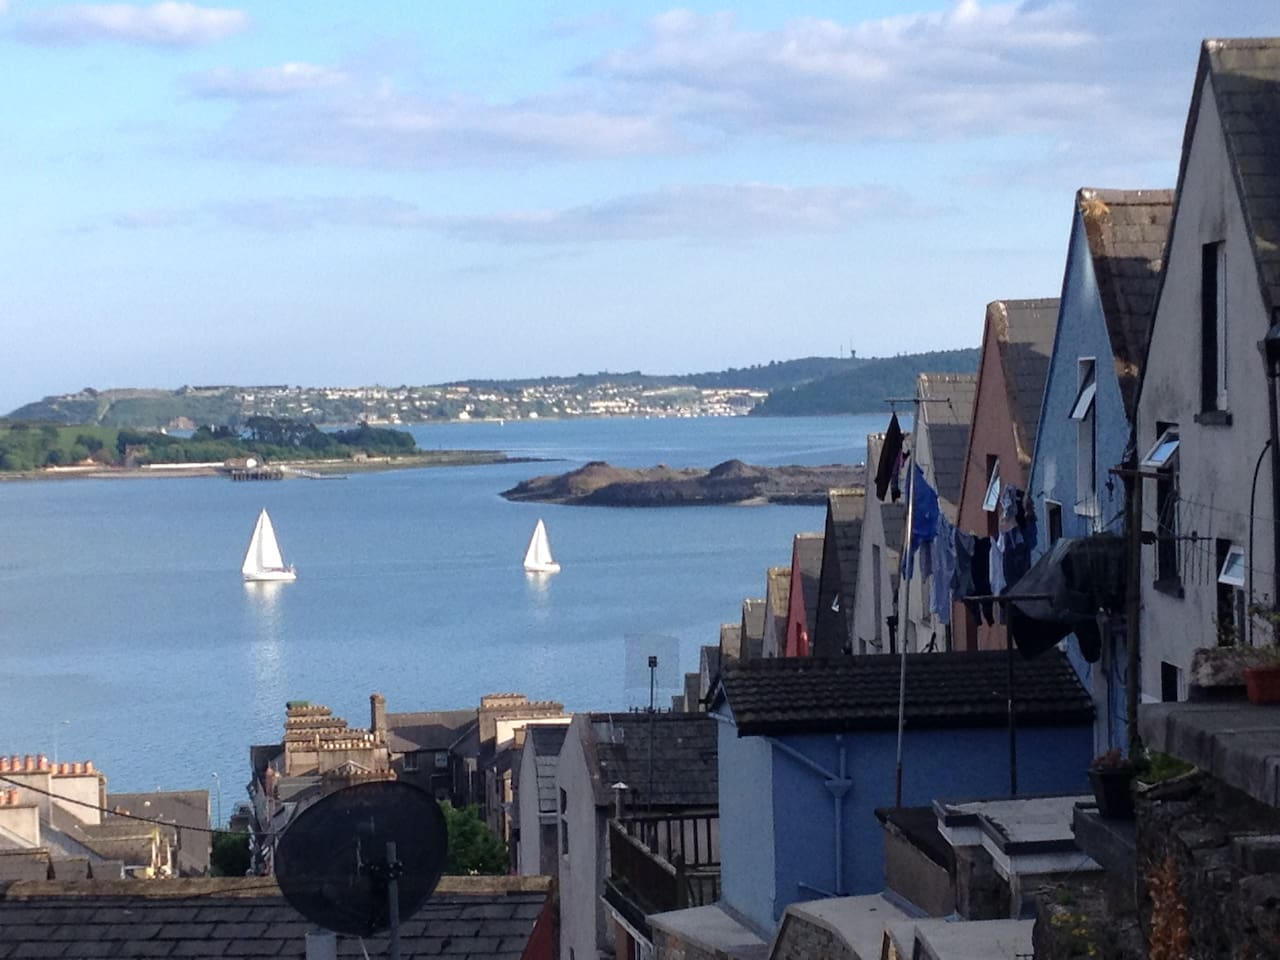 View from the Deck of Spike Island, Cobh Harbour & the Deck of Cards